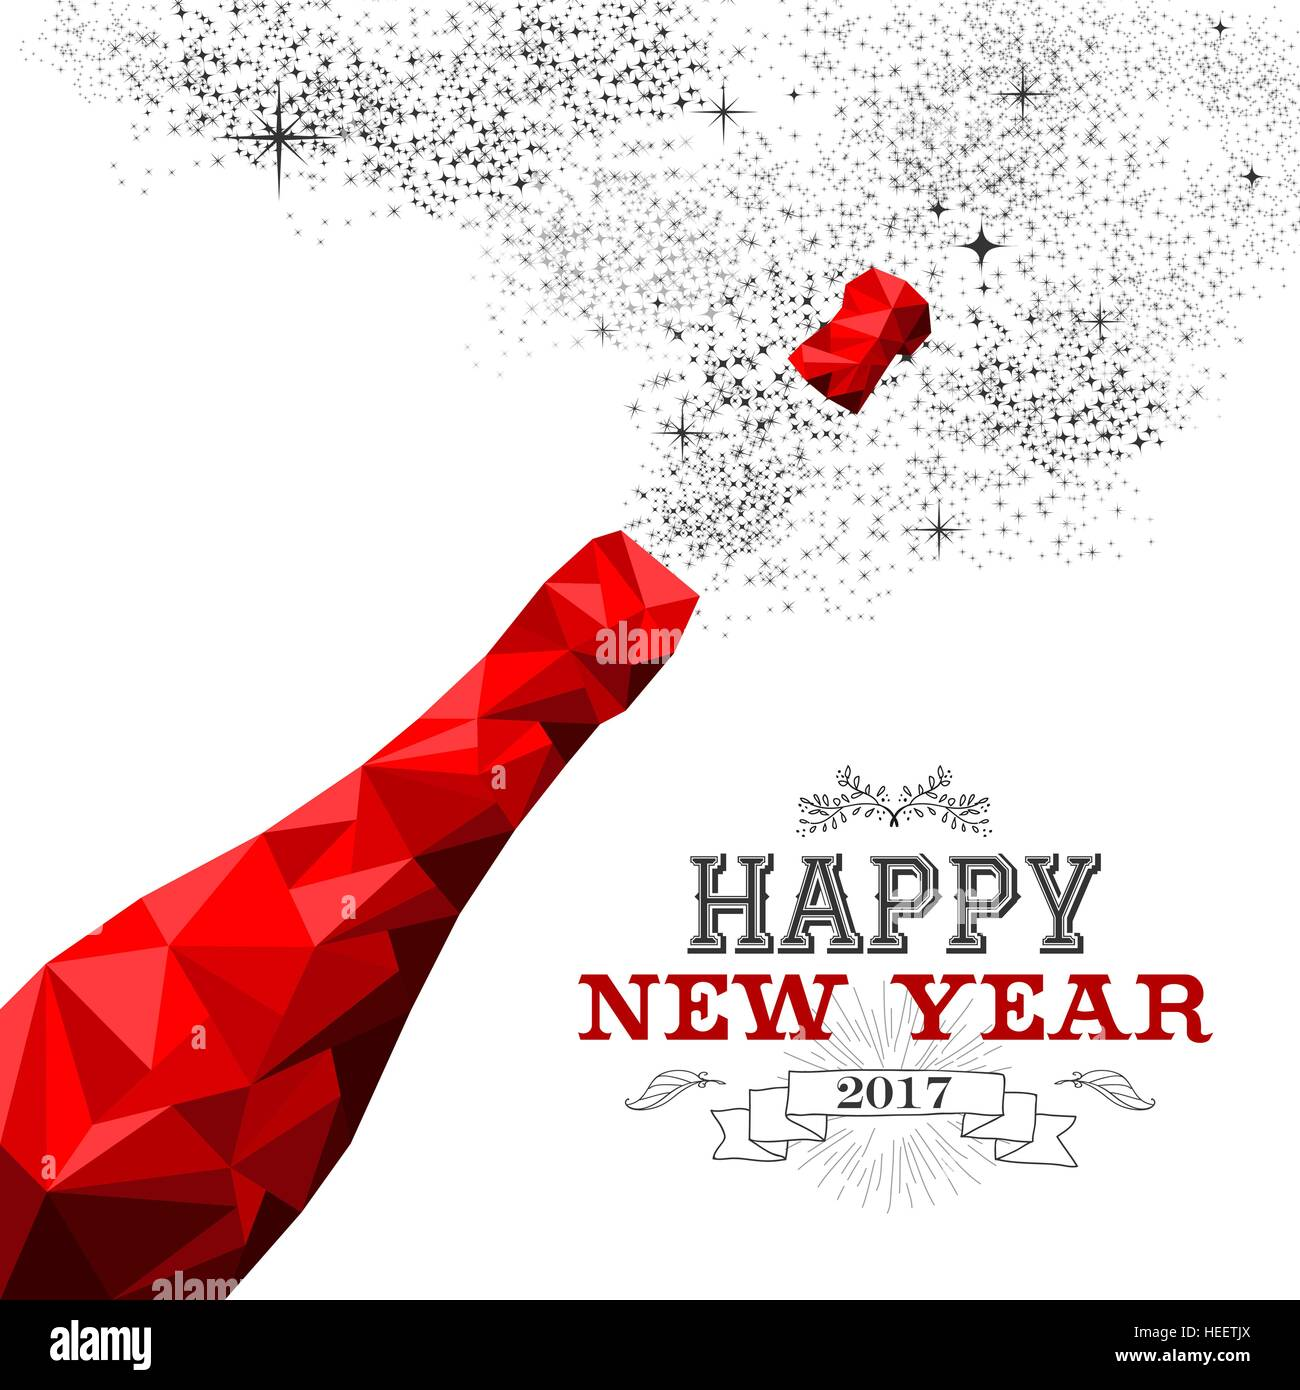 happy new year 2017 fancy red champagne bottle in hipster triangle low poly style ideal for greeting card or elegant holiday party invitation eps10